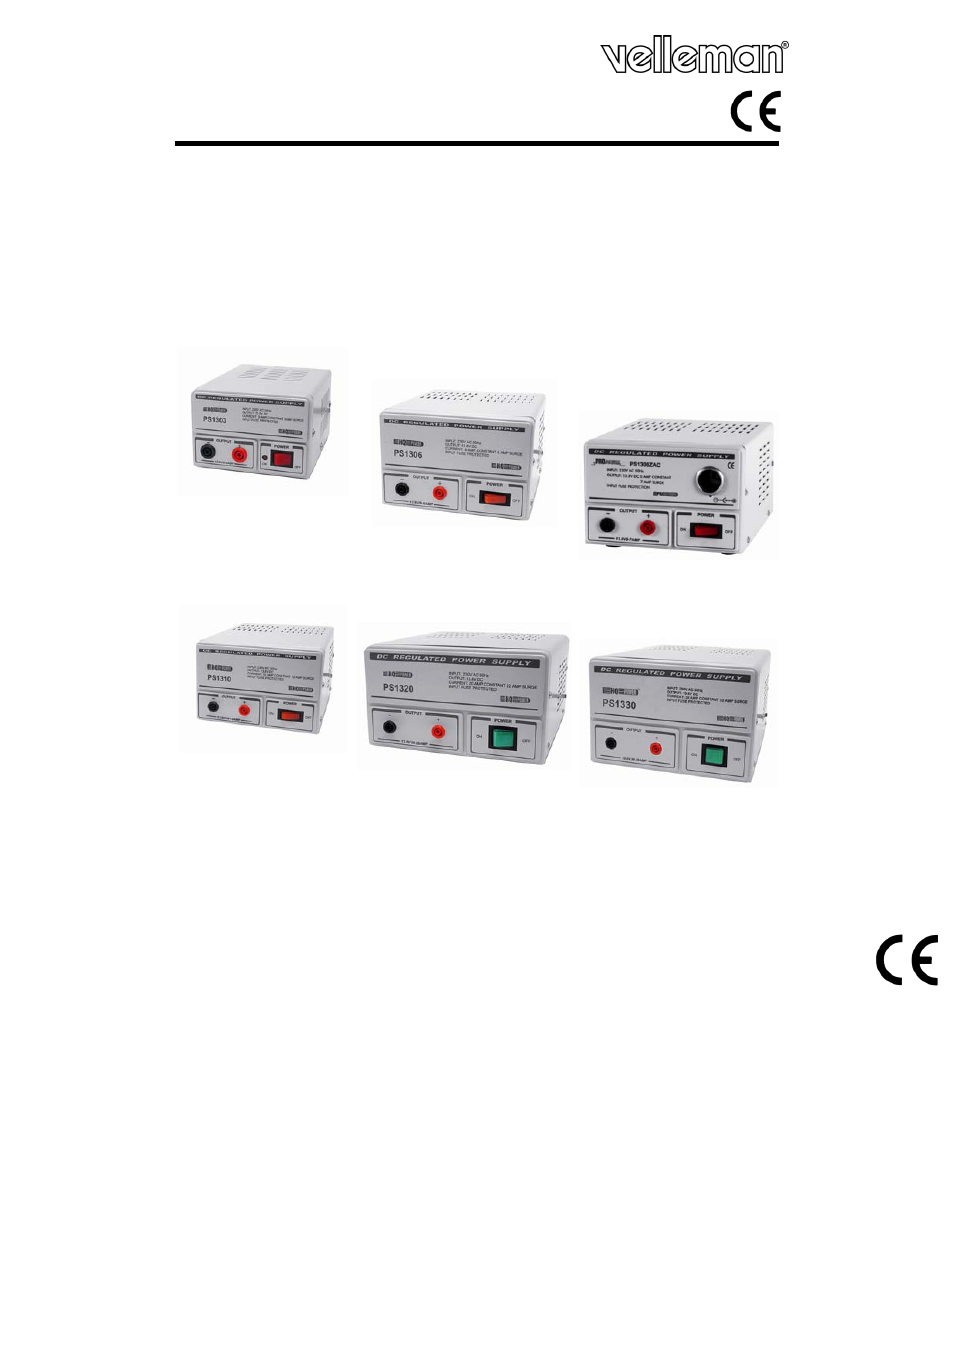 Velleman Ps1306c User Manual 11 Pages 138v 10a Power Supply